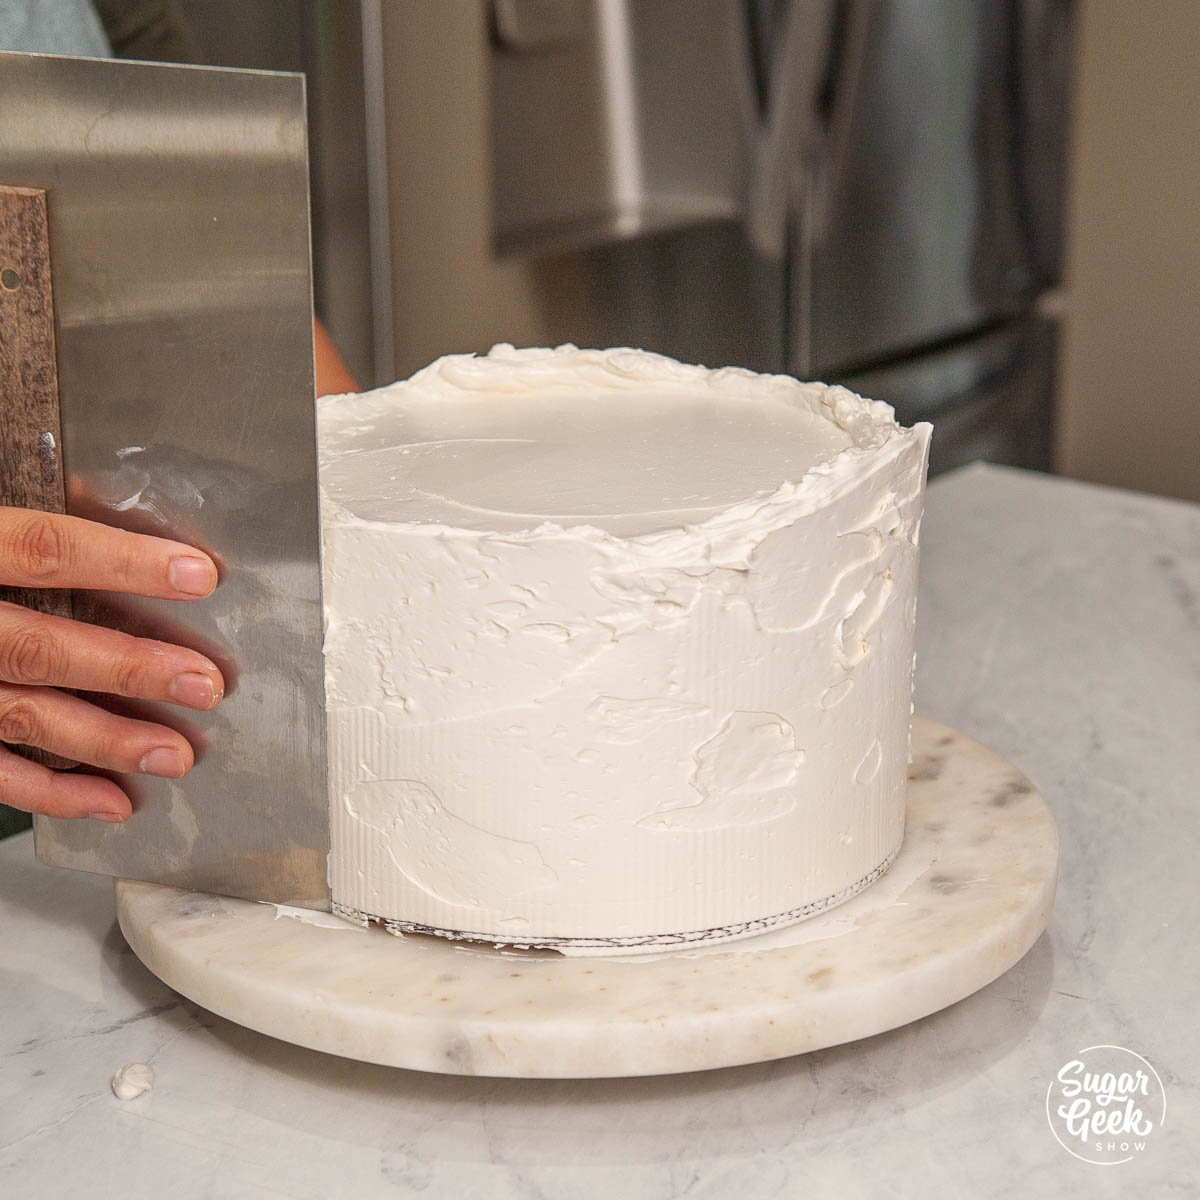 smoothing the final layer of buttercream with a bench scraper